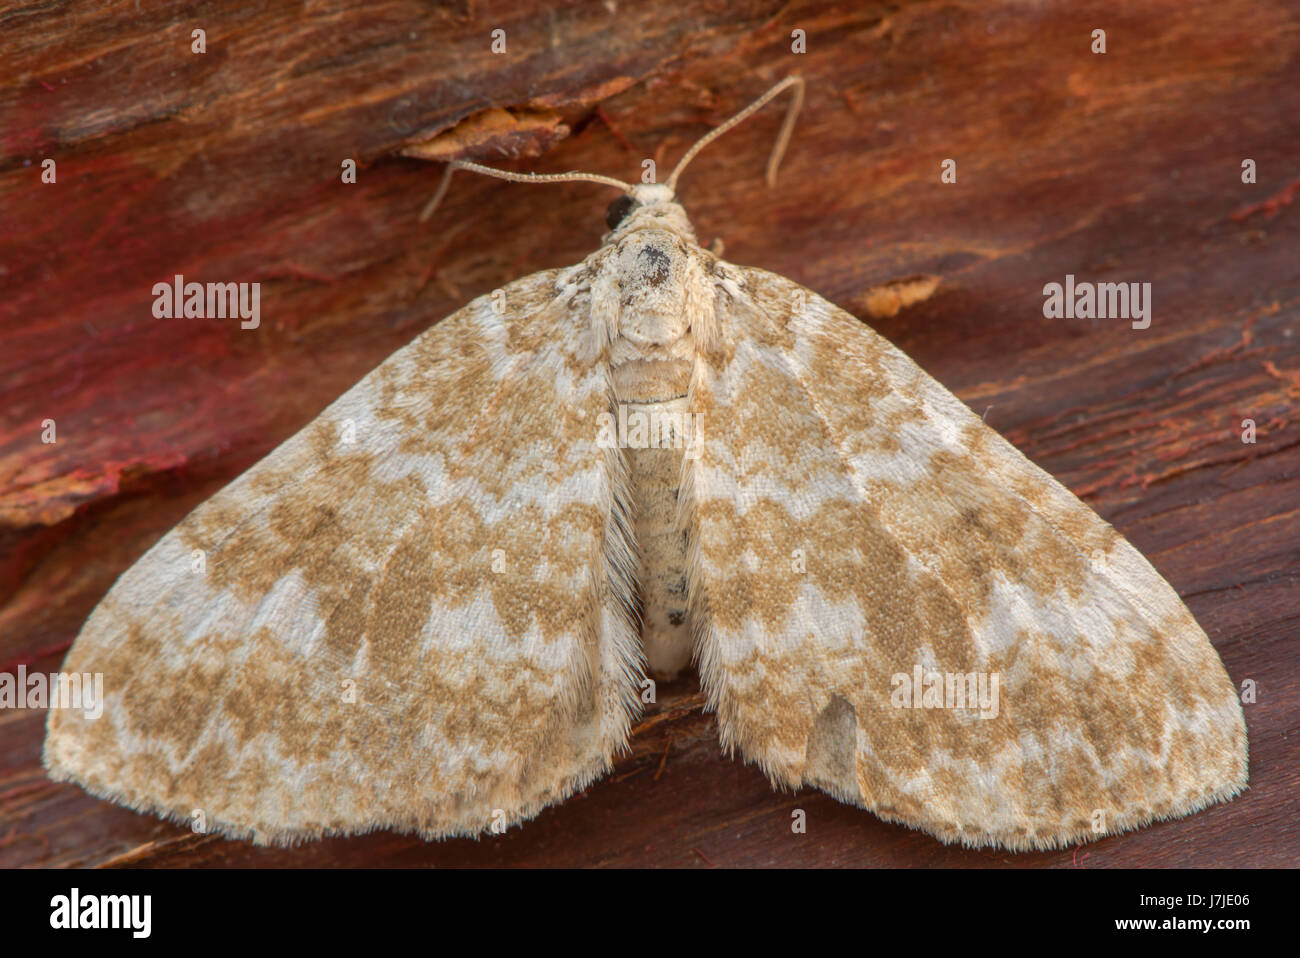 Sandy carpet (Perizoma flavofasciata) moth. Sandy coloured insect in the family Geometridae, at rest on bark - Stock Image